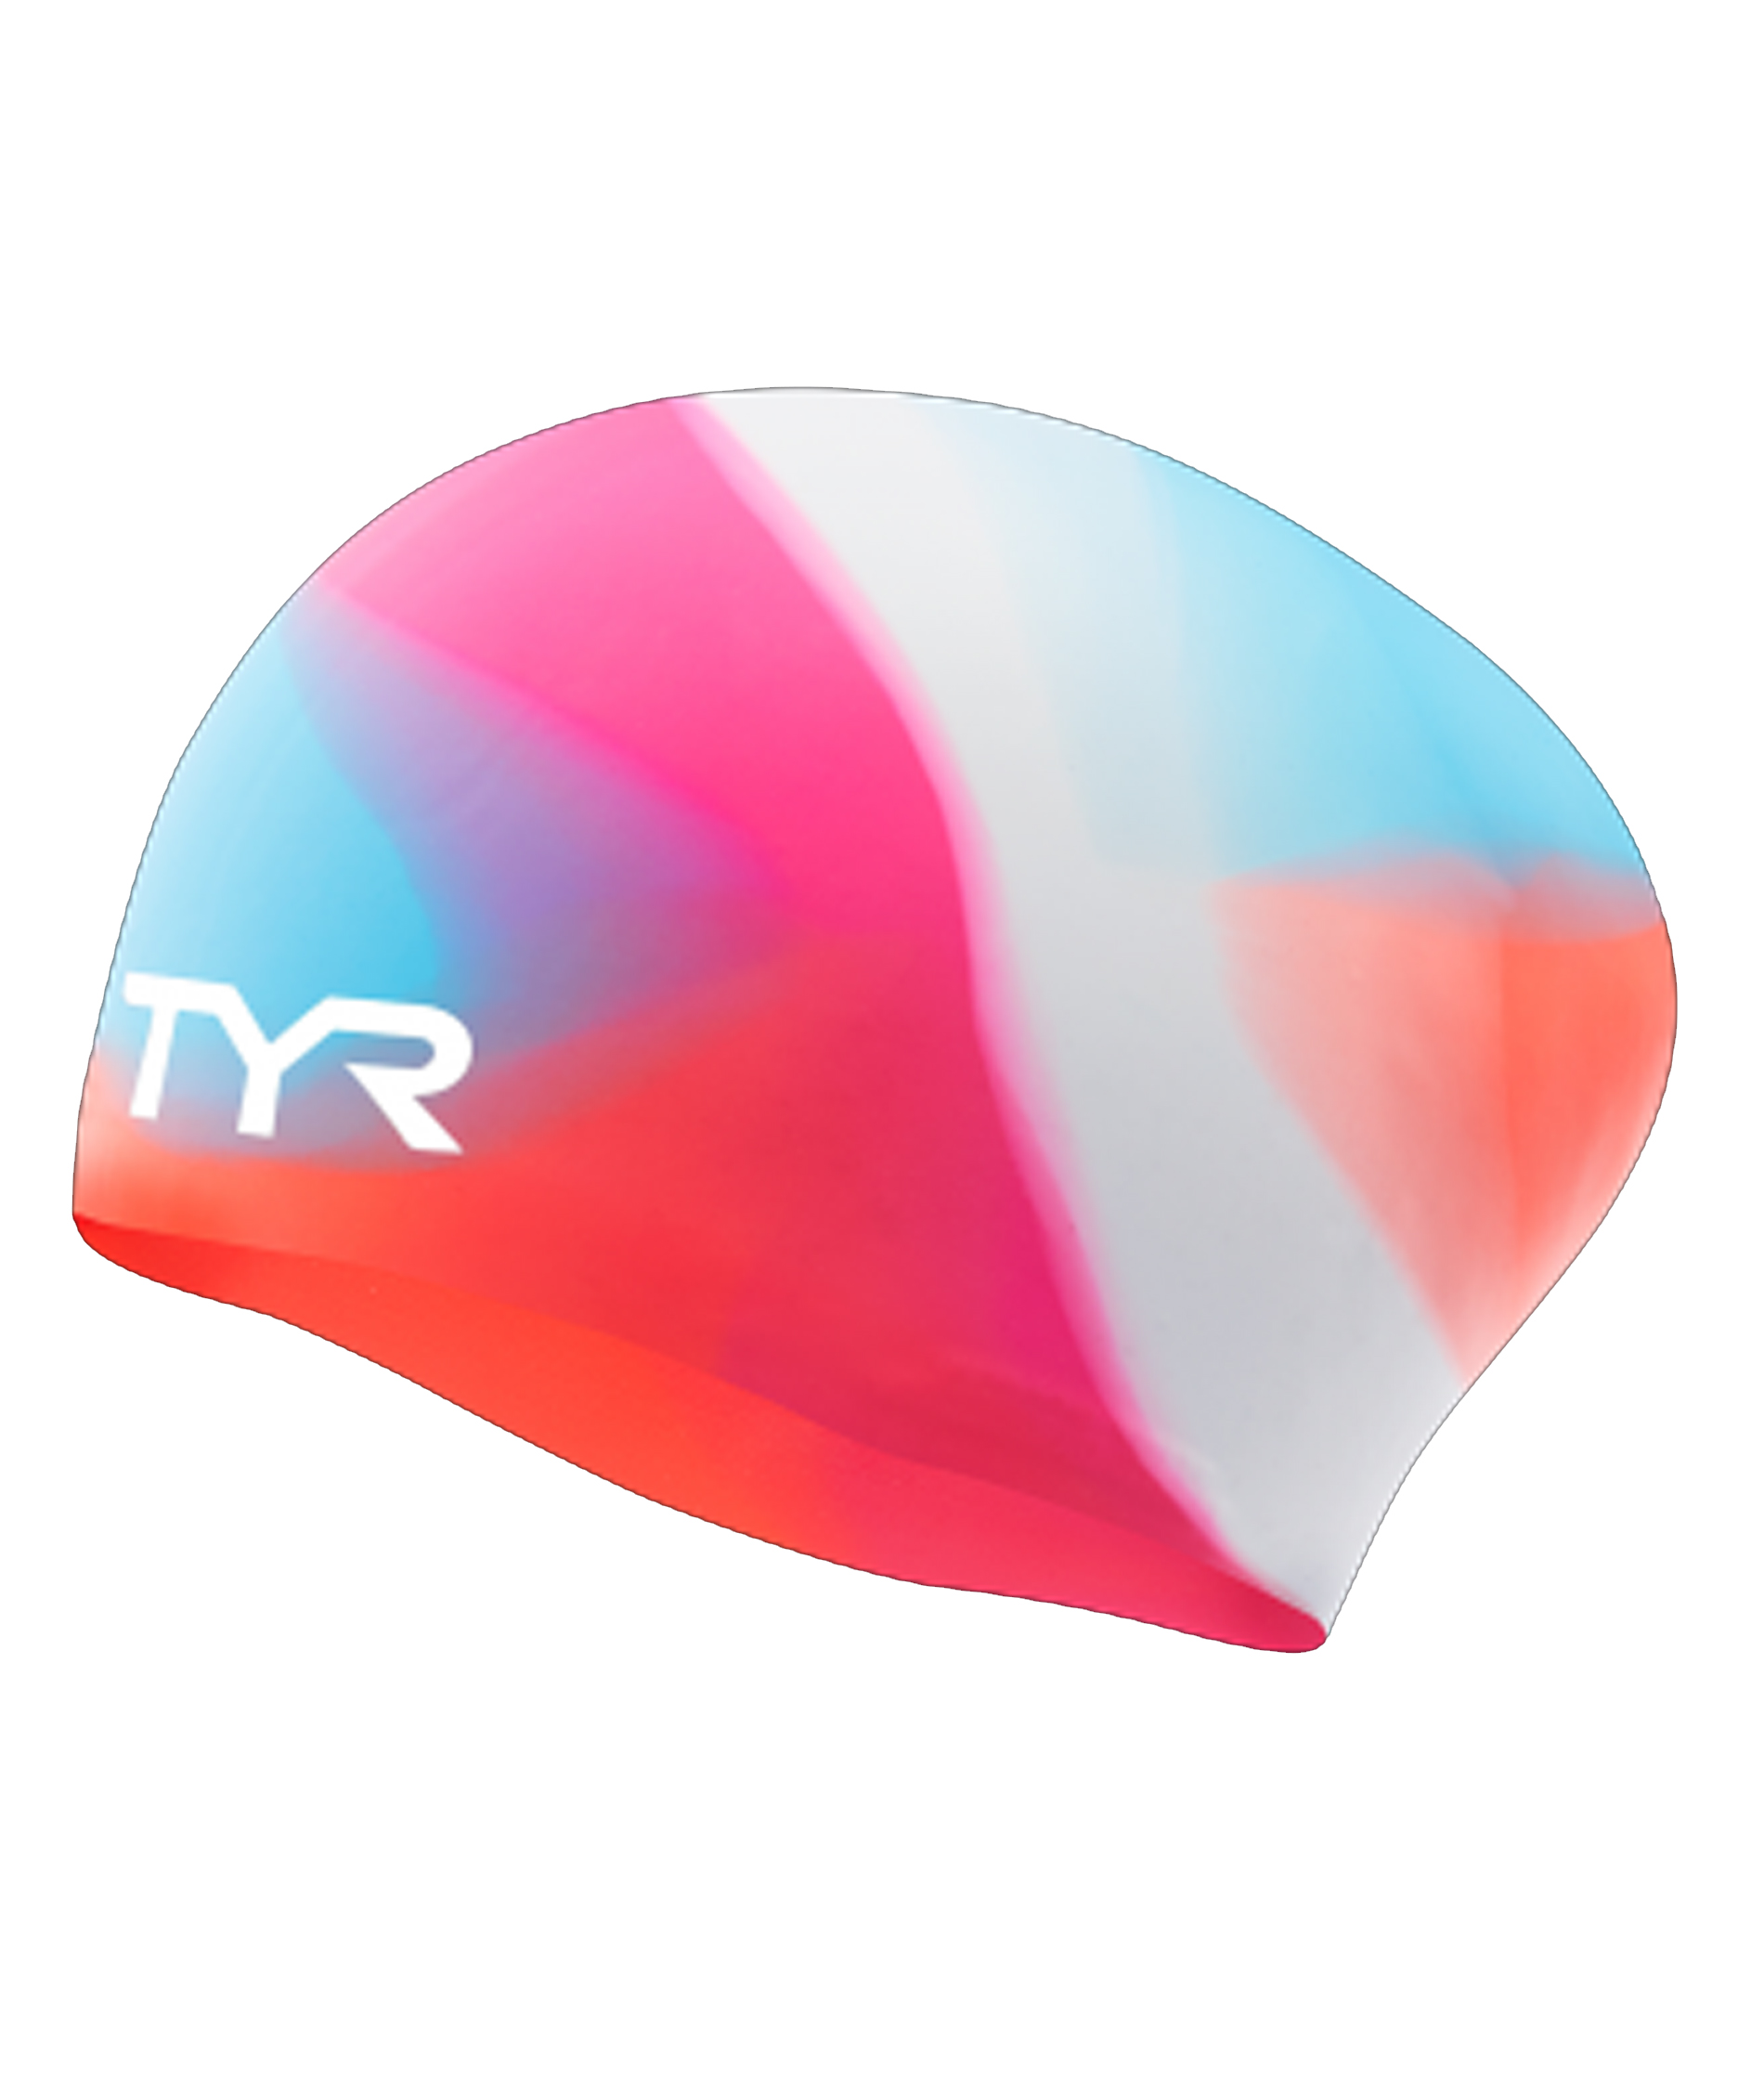 TYR Tie Dye Long Hair Silicone Youth Swim Cap - Pink/Blue